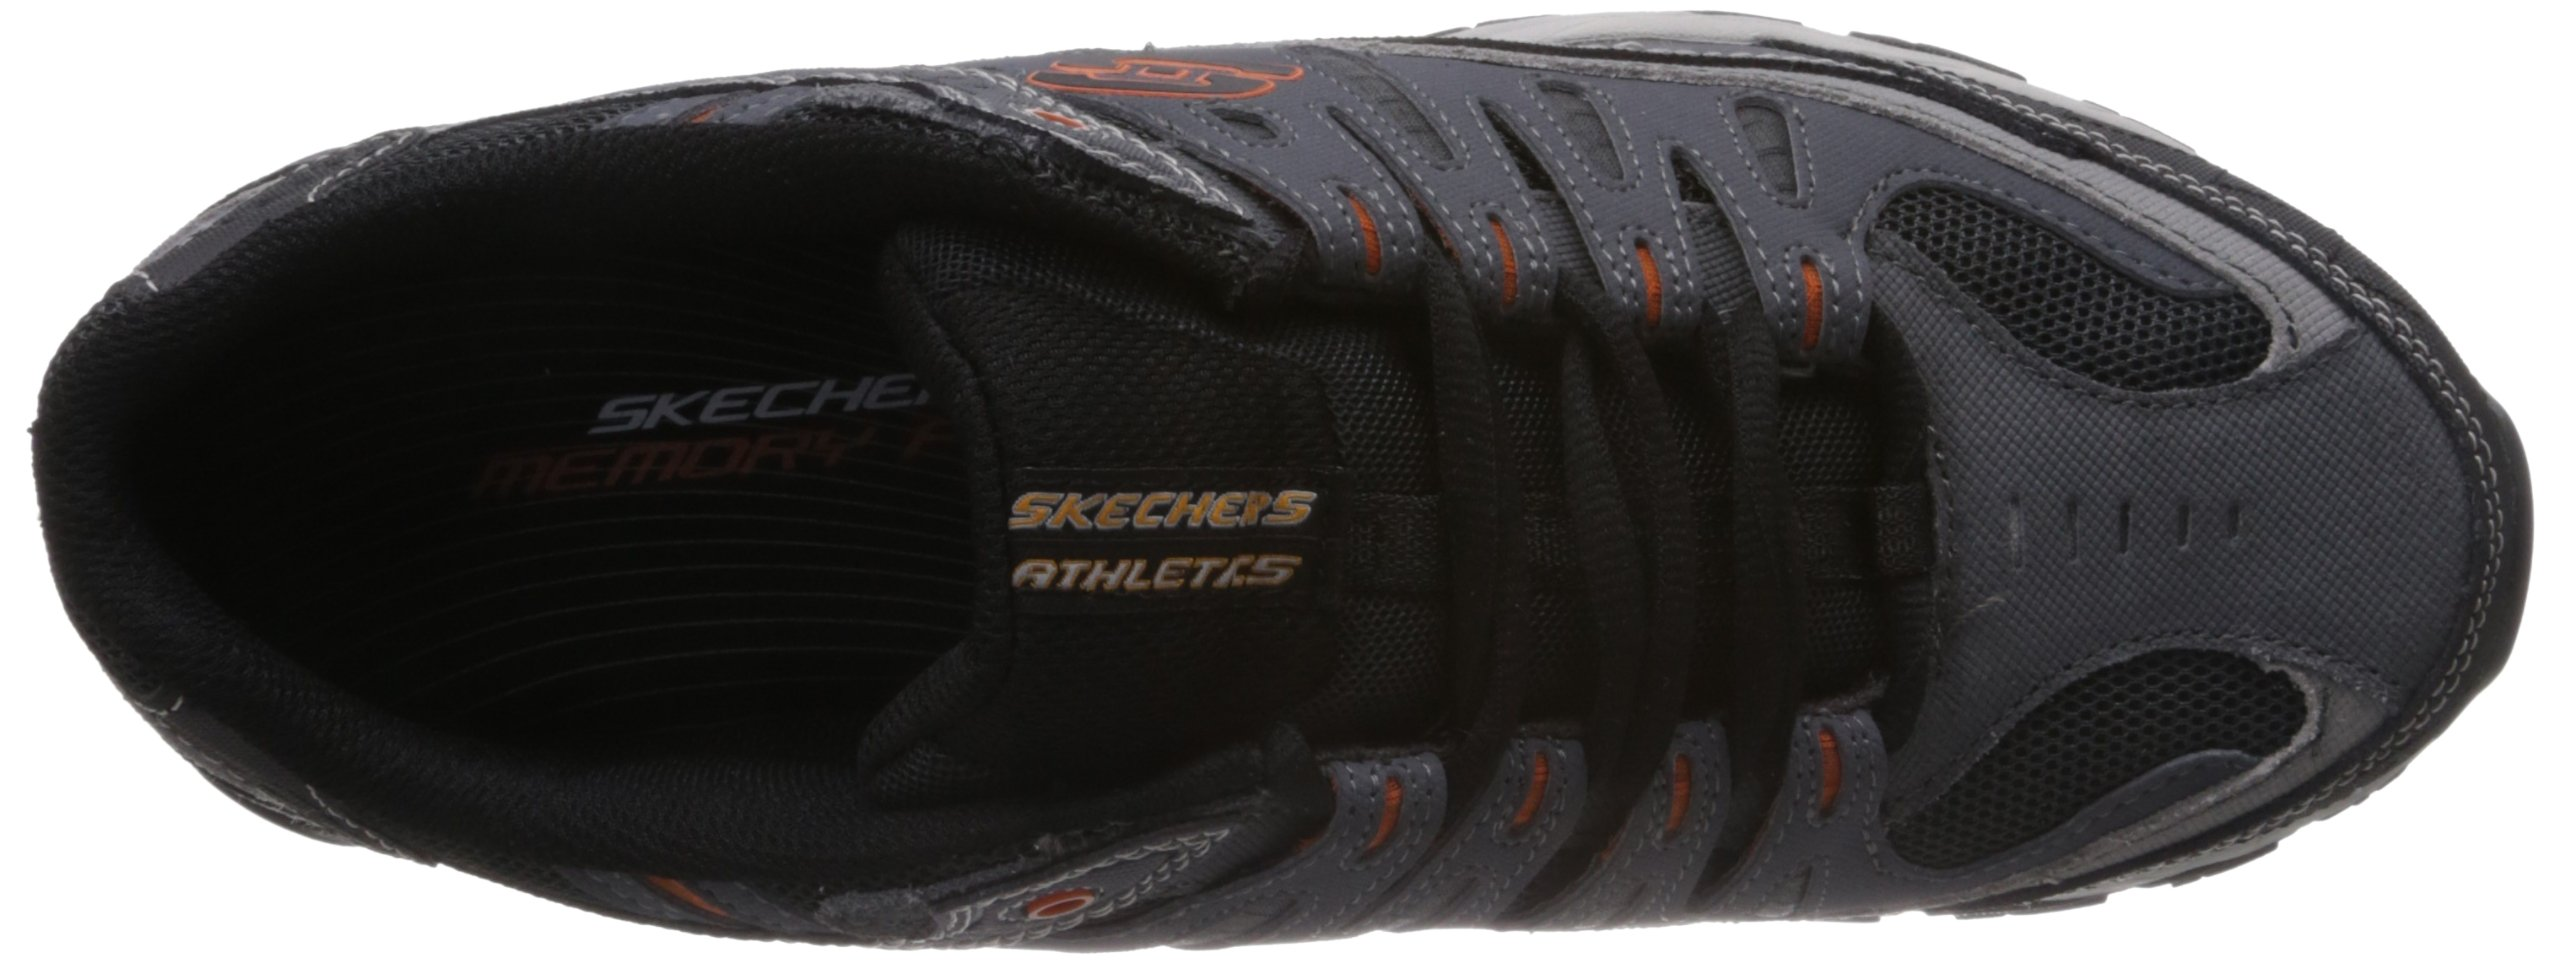 Skechers Sport Men's Afterburn Memory Foam Lace-Up Sneaker, Charcoal, 7 M US by Skechers (Image #7)